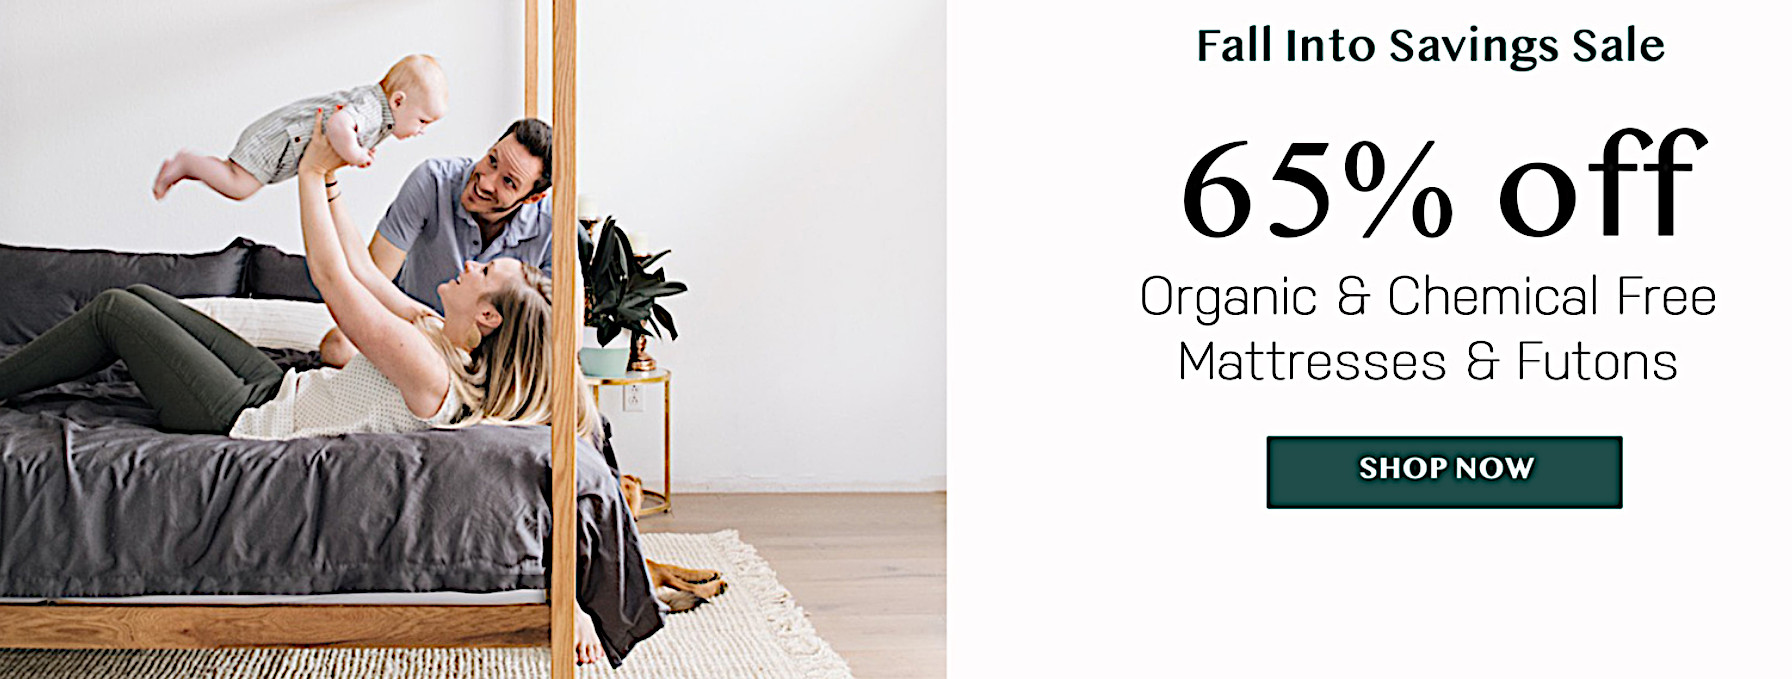 Best-selling organic and chemical free mattresses and futons